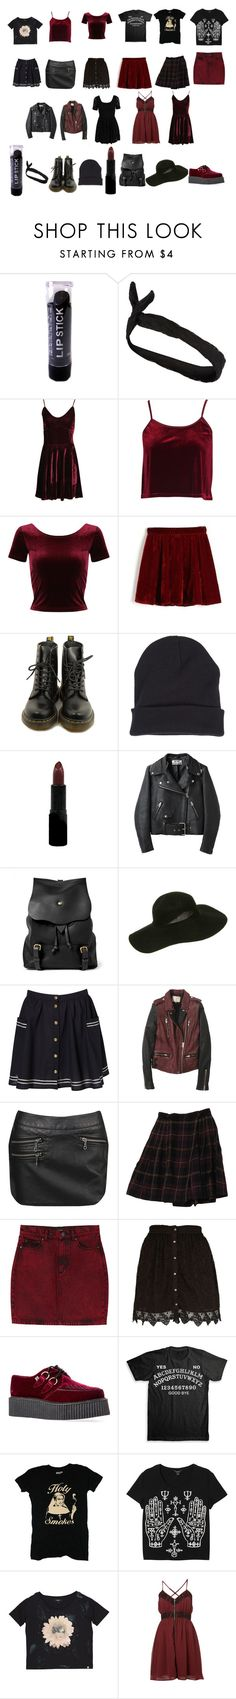 """""""Black and burgundy summer capsule wardrobe"""" by rinaravaged ❤ liked on Polyvore featuring River Island, Boohoo, Dr. Martens, Rimmel, Acne Studios, Bill Amberg, Forever 21, Rena Rowan, Monki and T.U.K."""